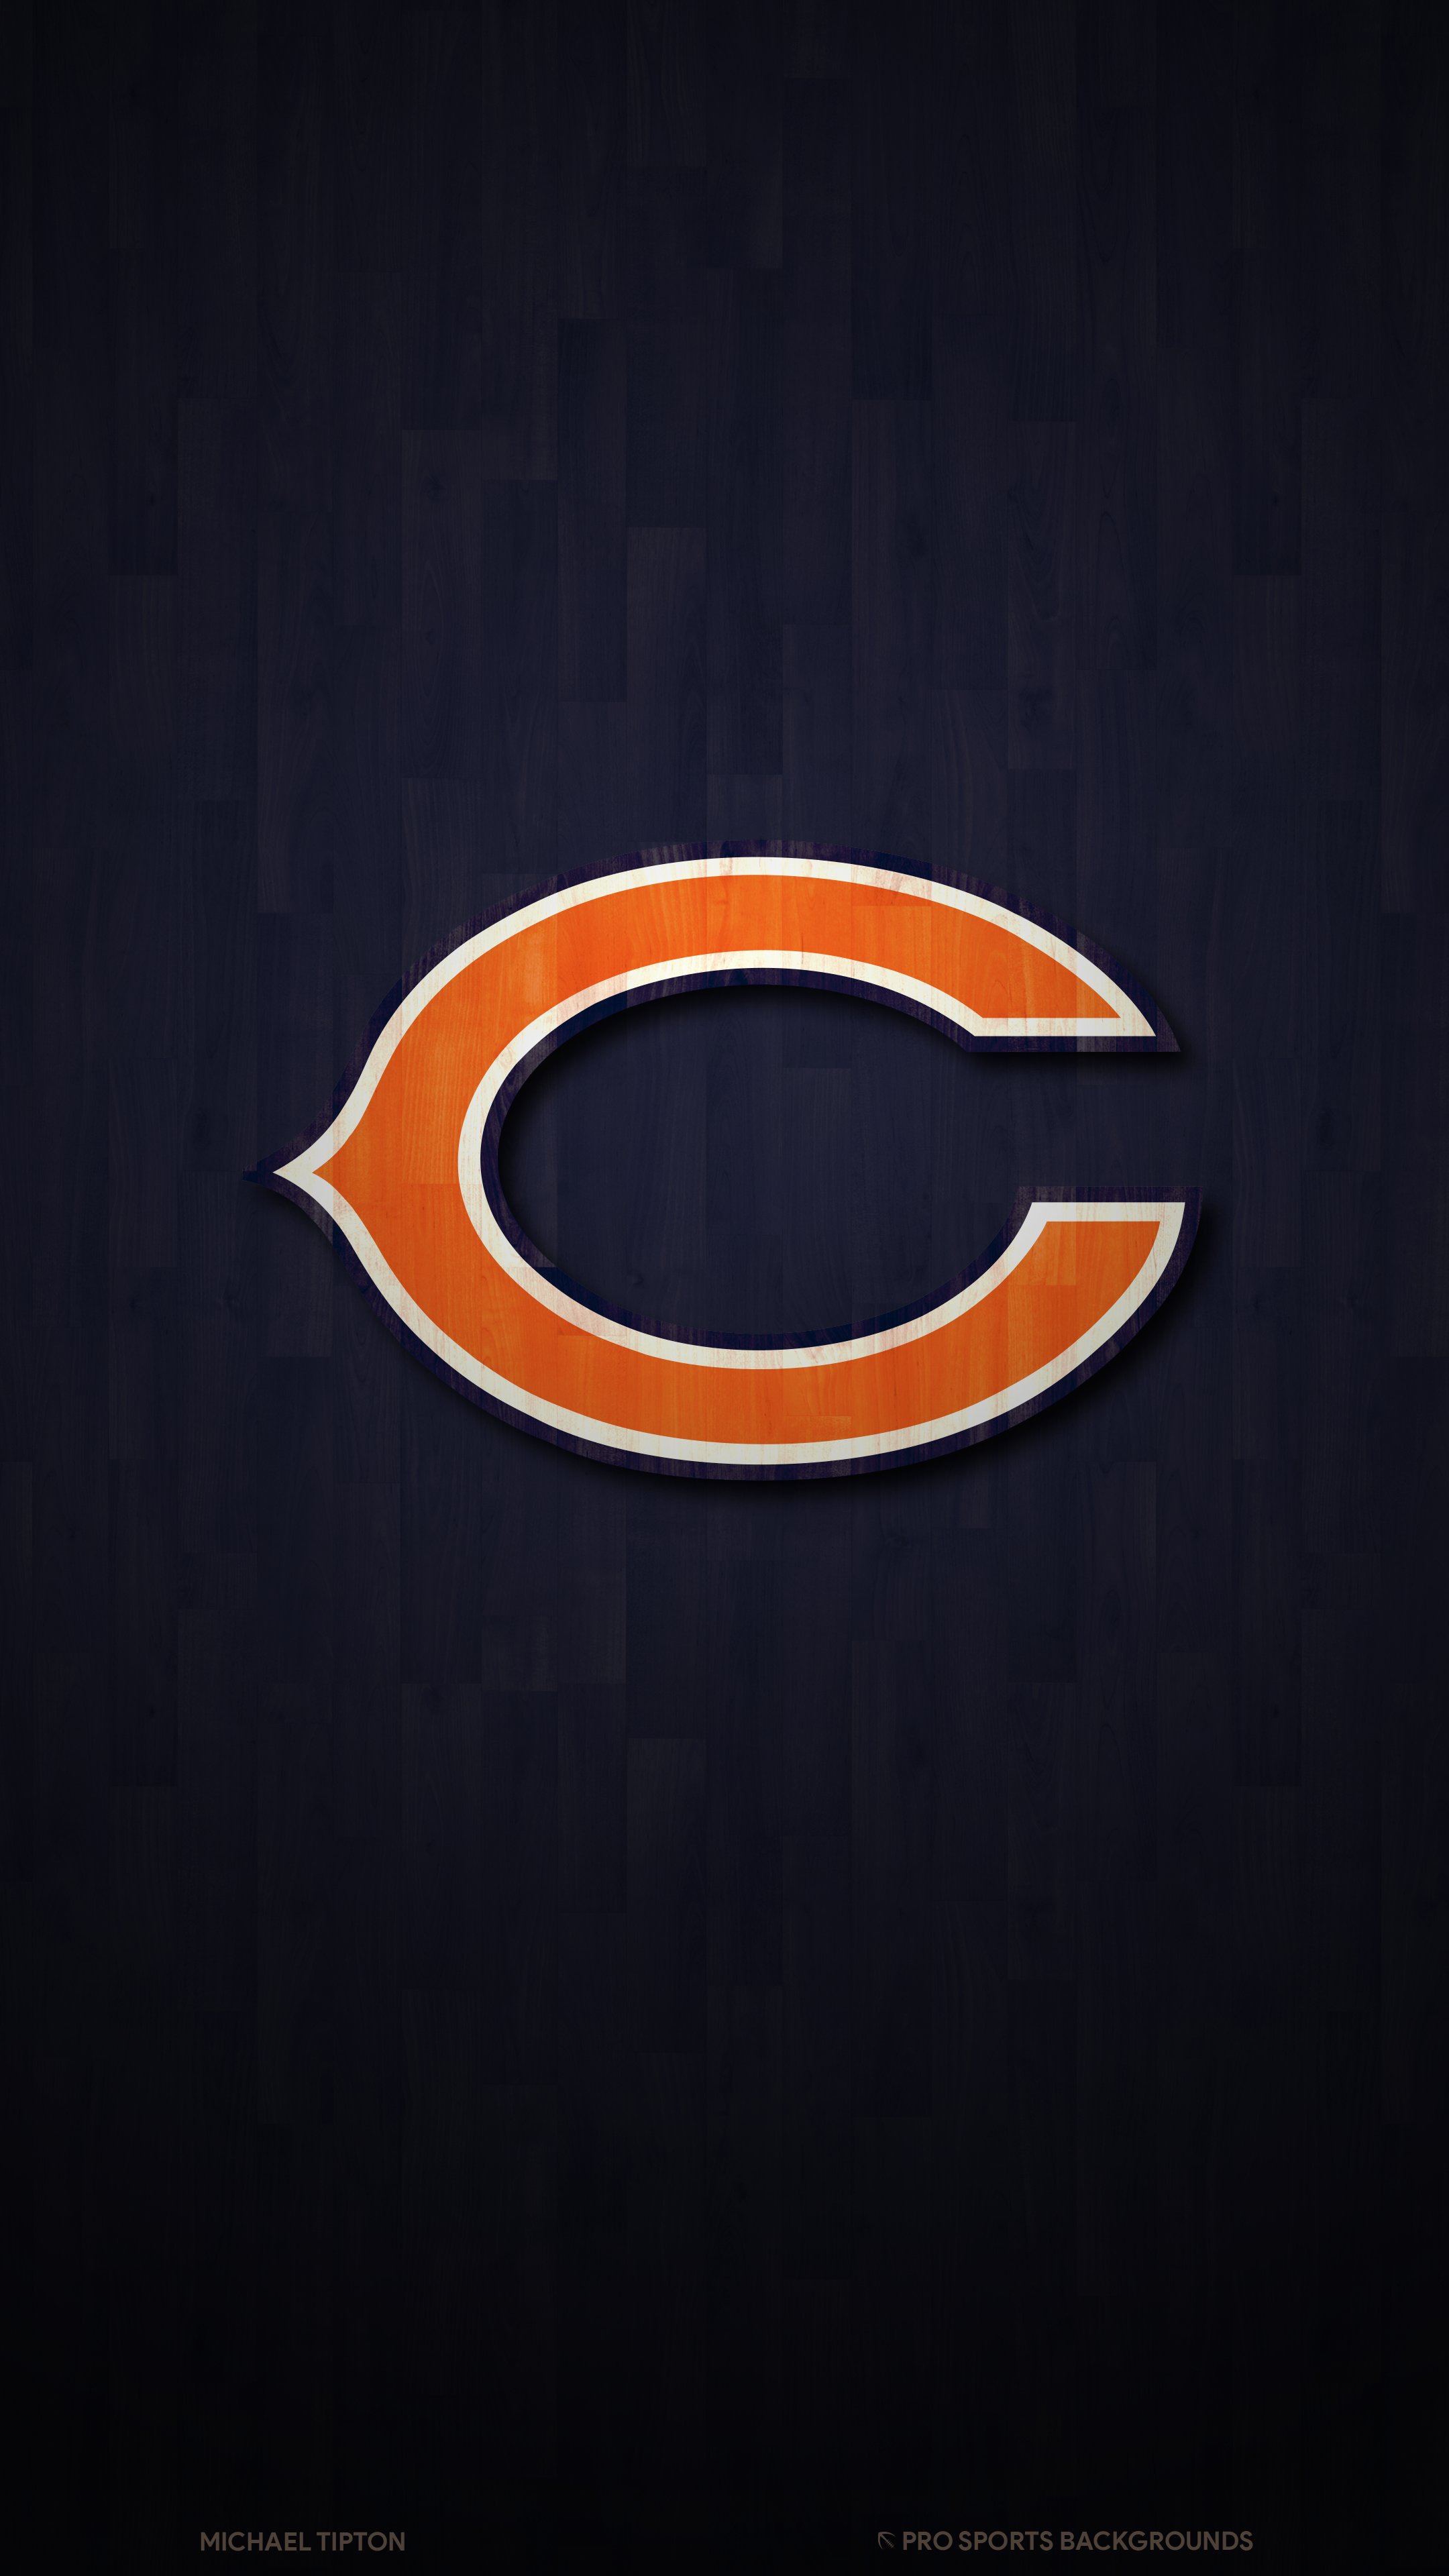 2021 Chicago Bears Wallpapers Pro Sports Backgrounds 2160x3840